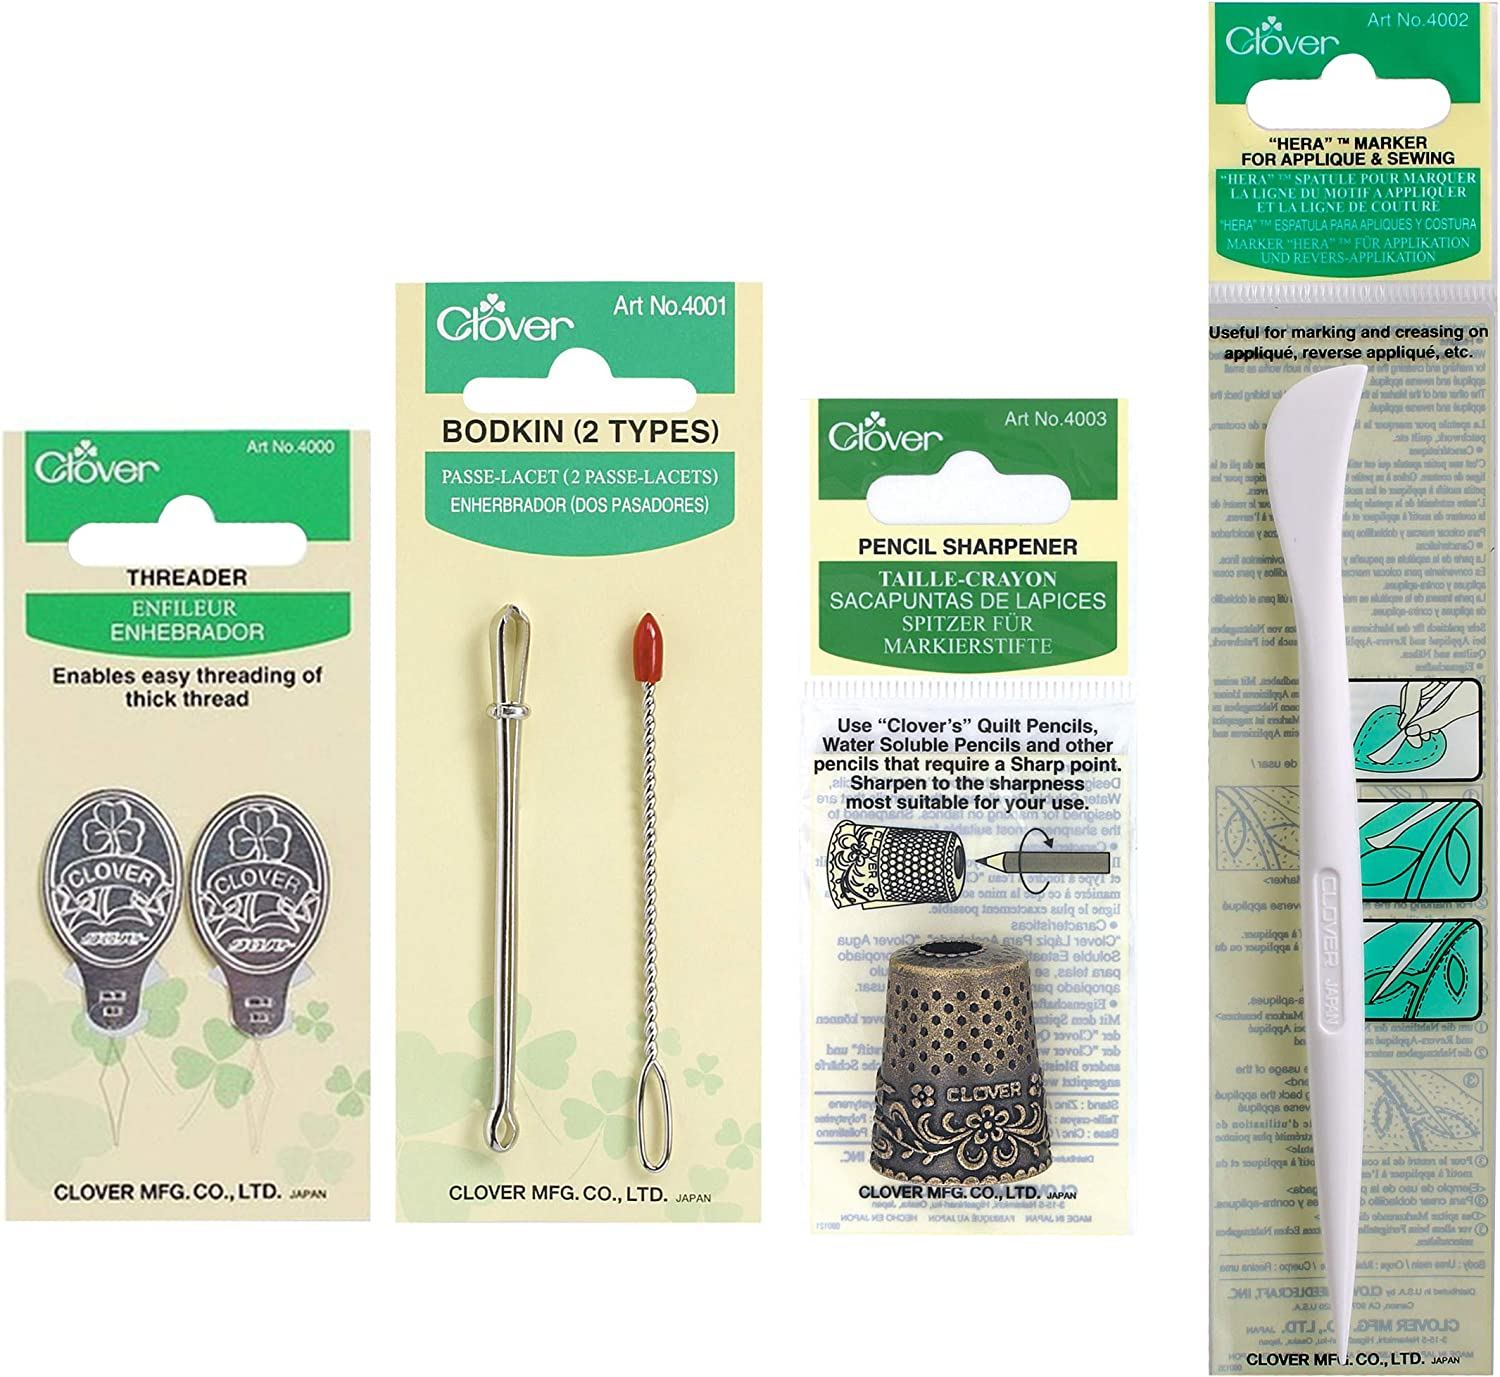 Clover Hera Fabric Marker Spatule For Quilting Work 490//NV